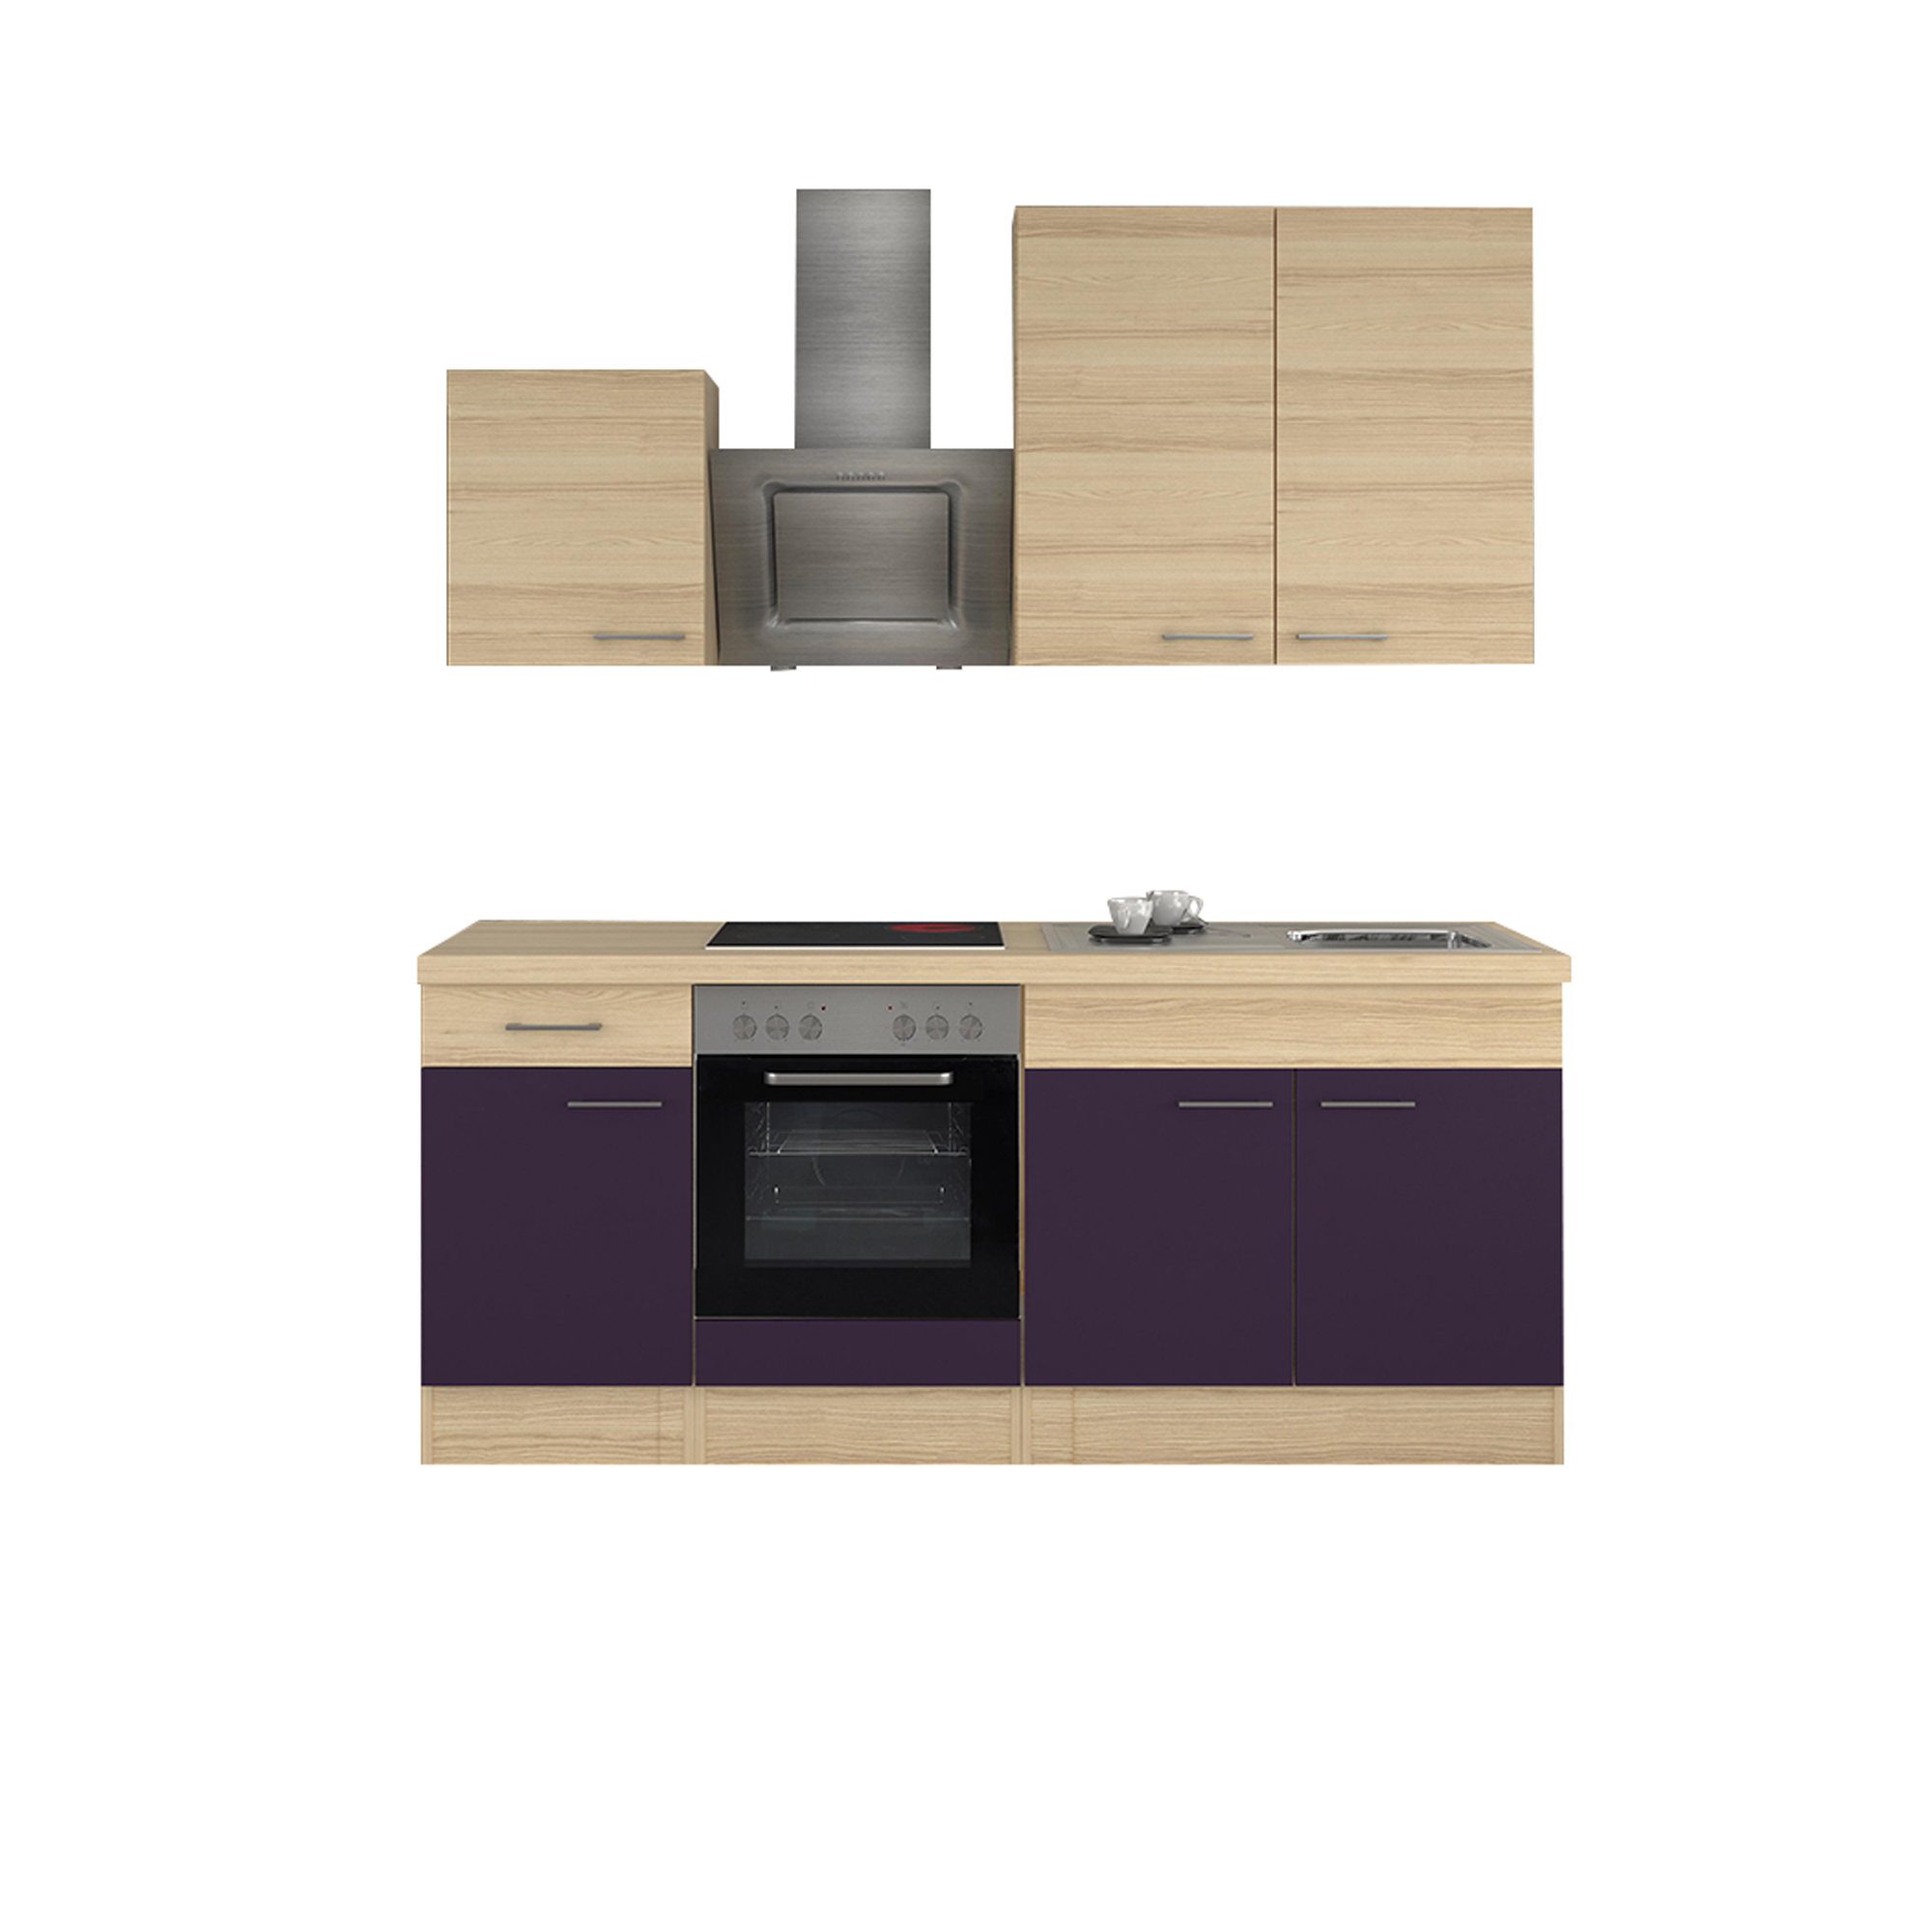 minik che k chenzeile mit elektroger ten einbauk che k chenblock 210cm aubergine ebay. Black Bedroom Furniture Sets. Home Design Ideas